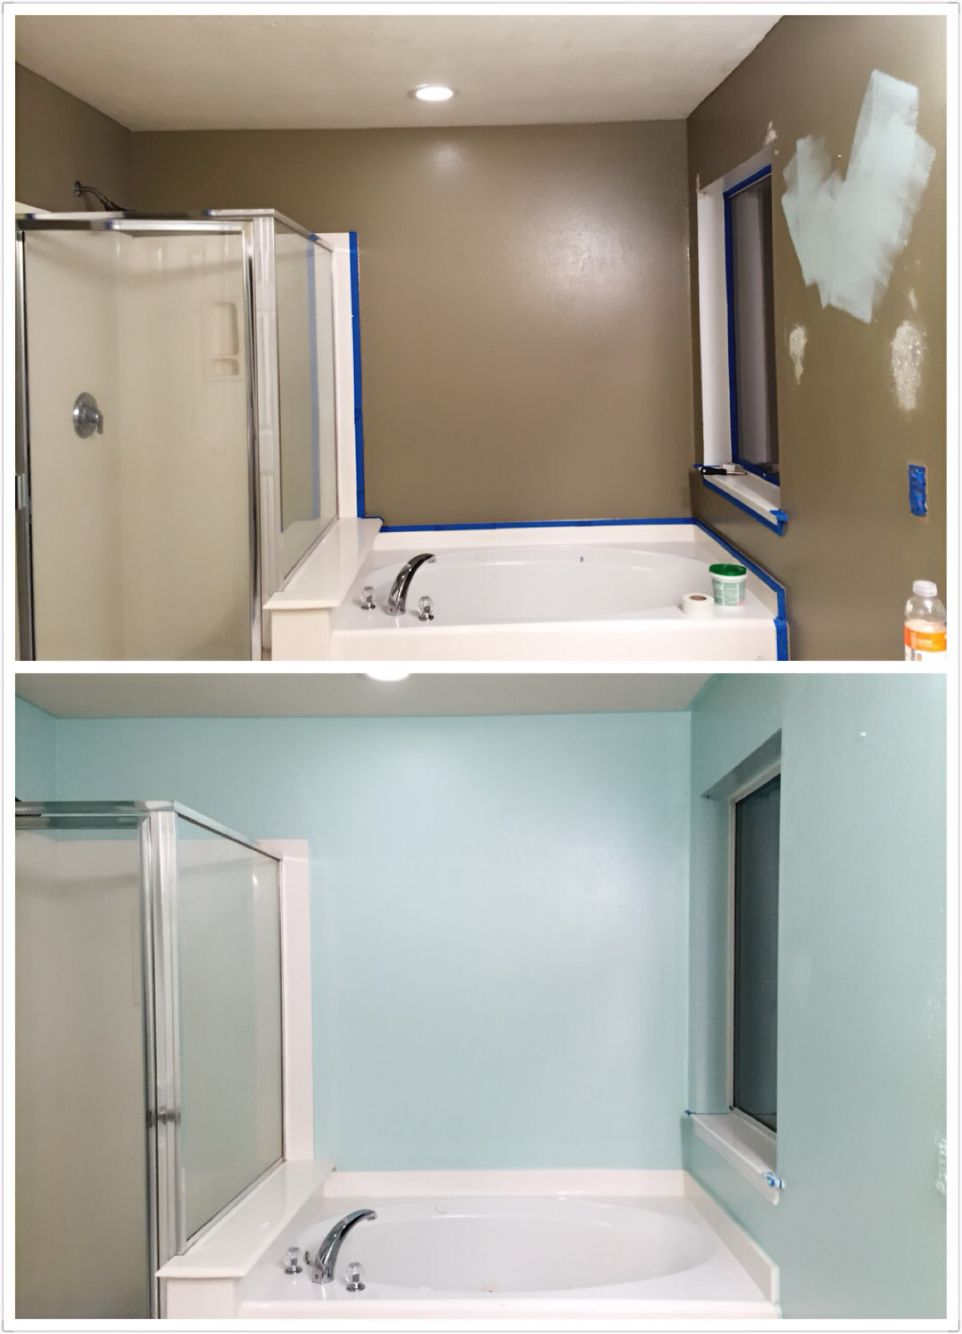 Bathroom paint ideas behr - Bathroom Makeover Diy Paint Behr Whipped Mint First Time Painter